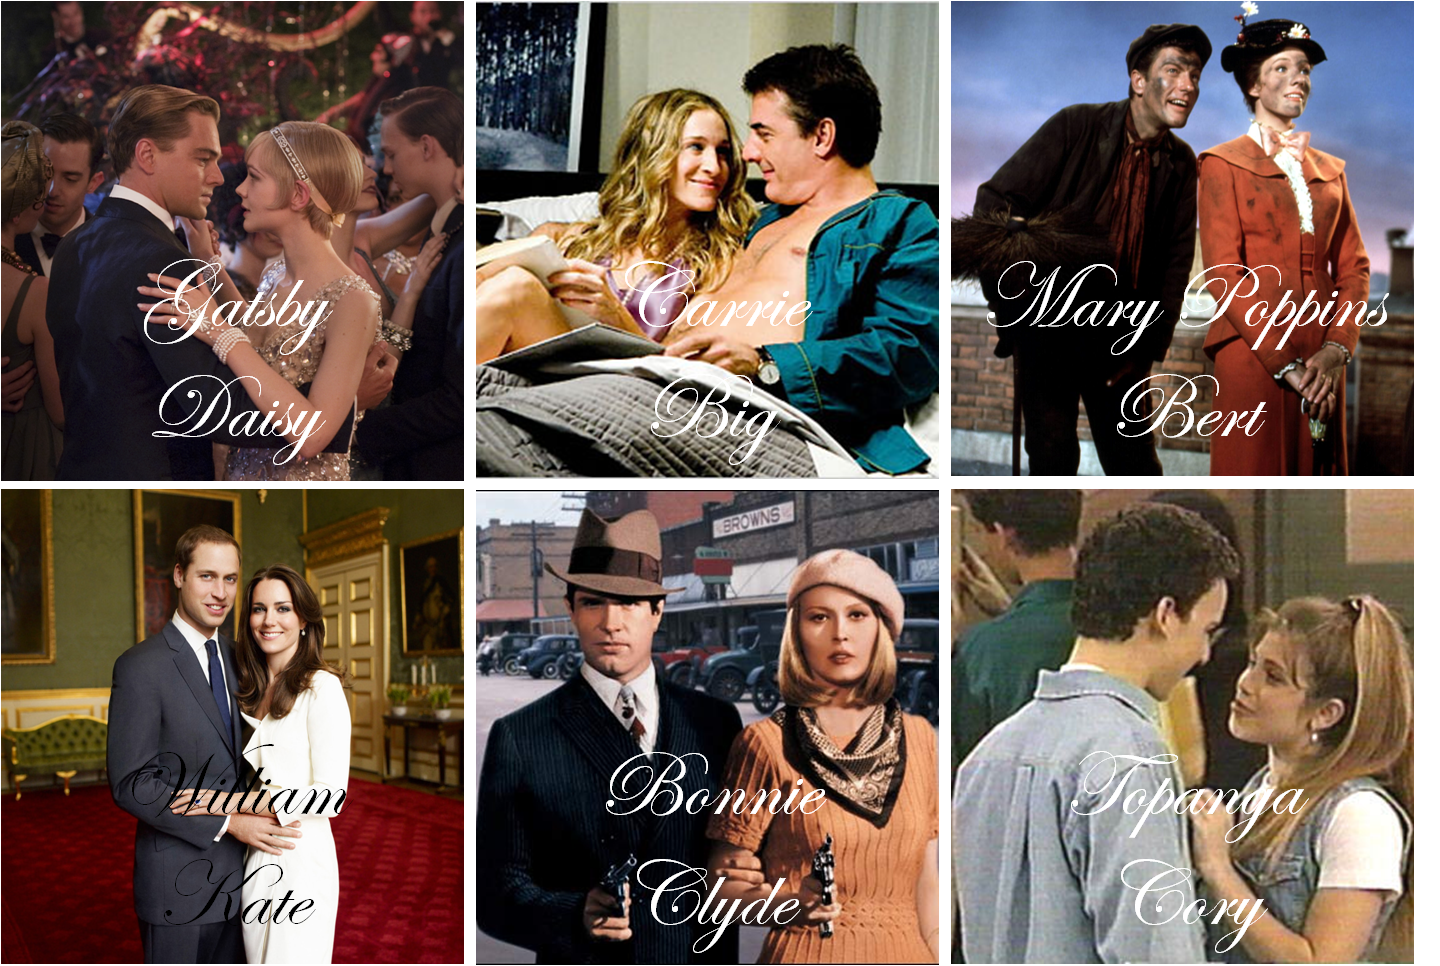 Gatsby & Daisy, Carrie & Big, Mary Poppins & Bert, William & Kate, Bonnie & Clyde, Cory & Topanga